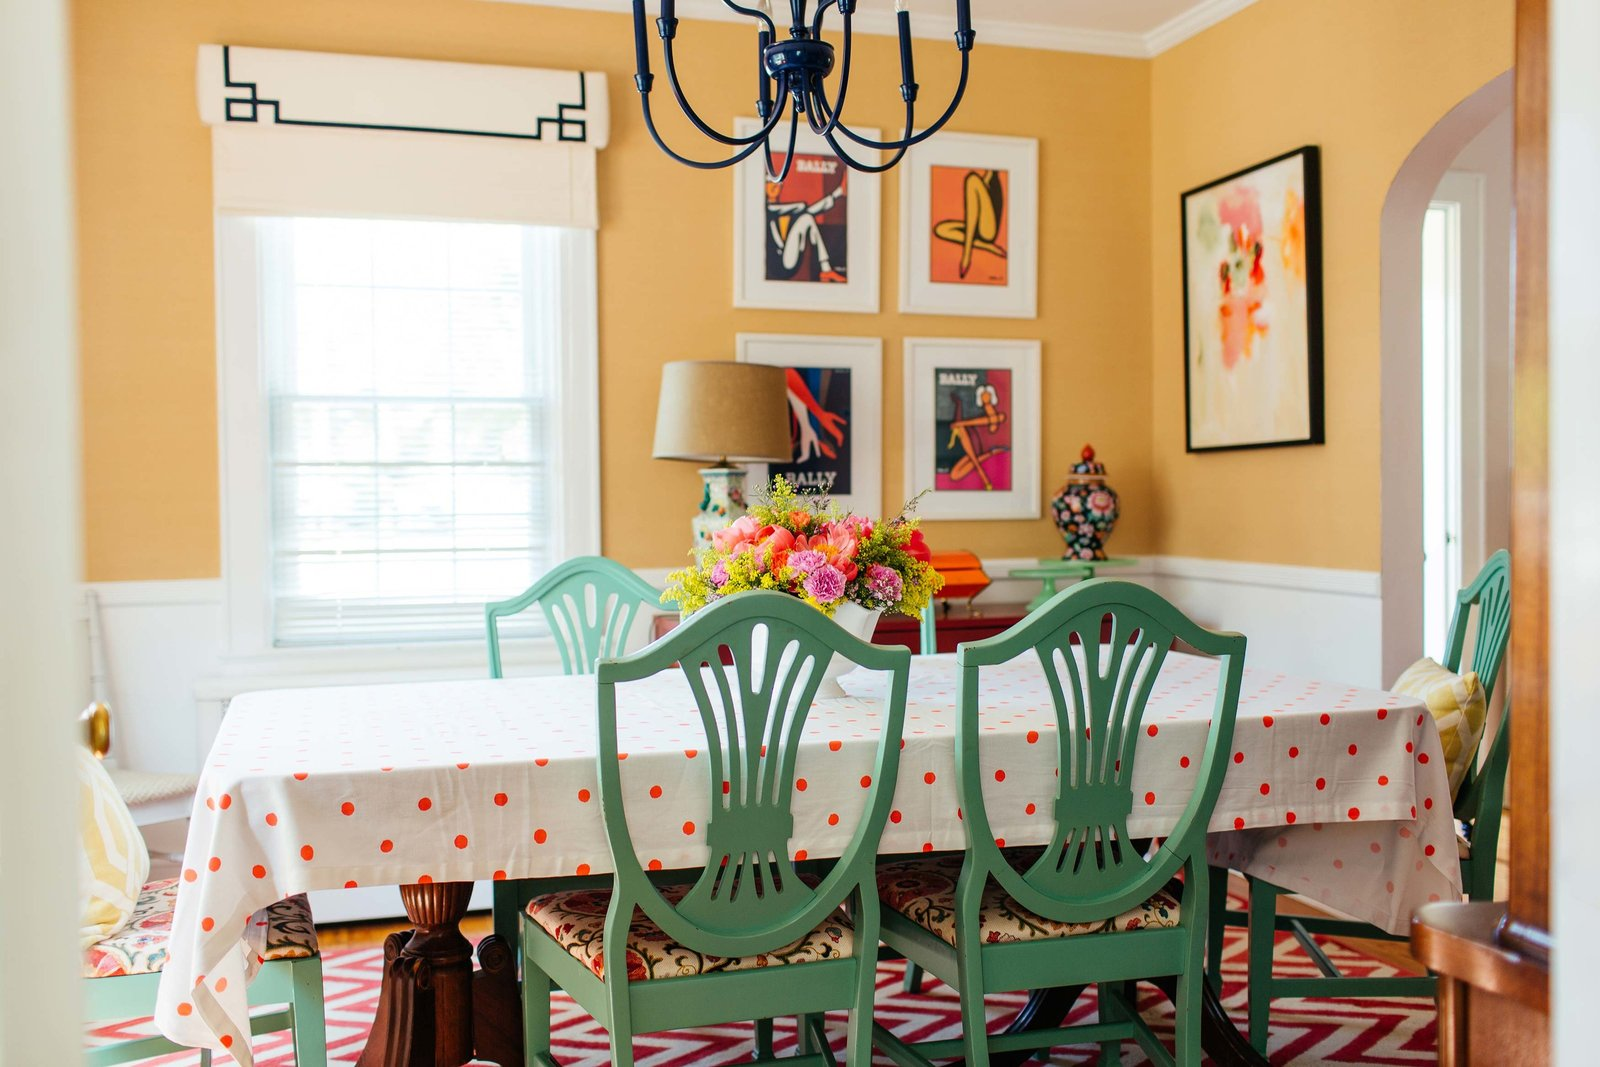 A colorfully decorated dining room in Westbury, NY.